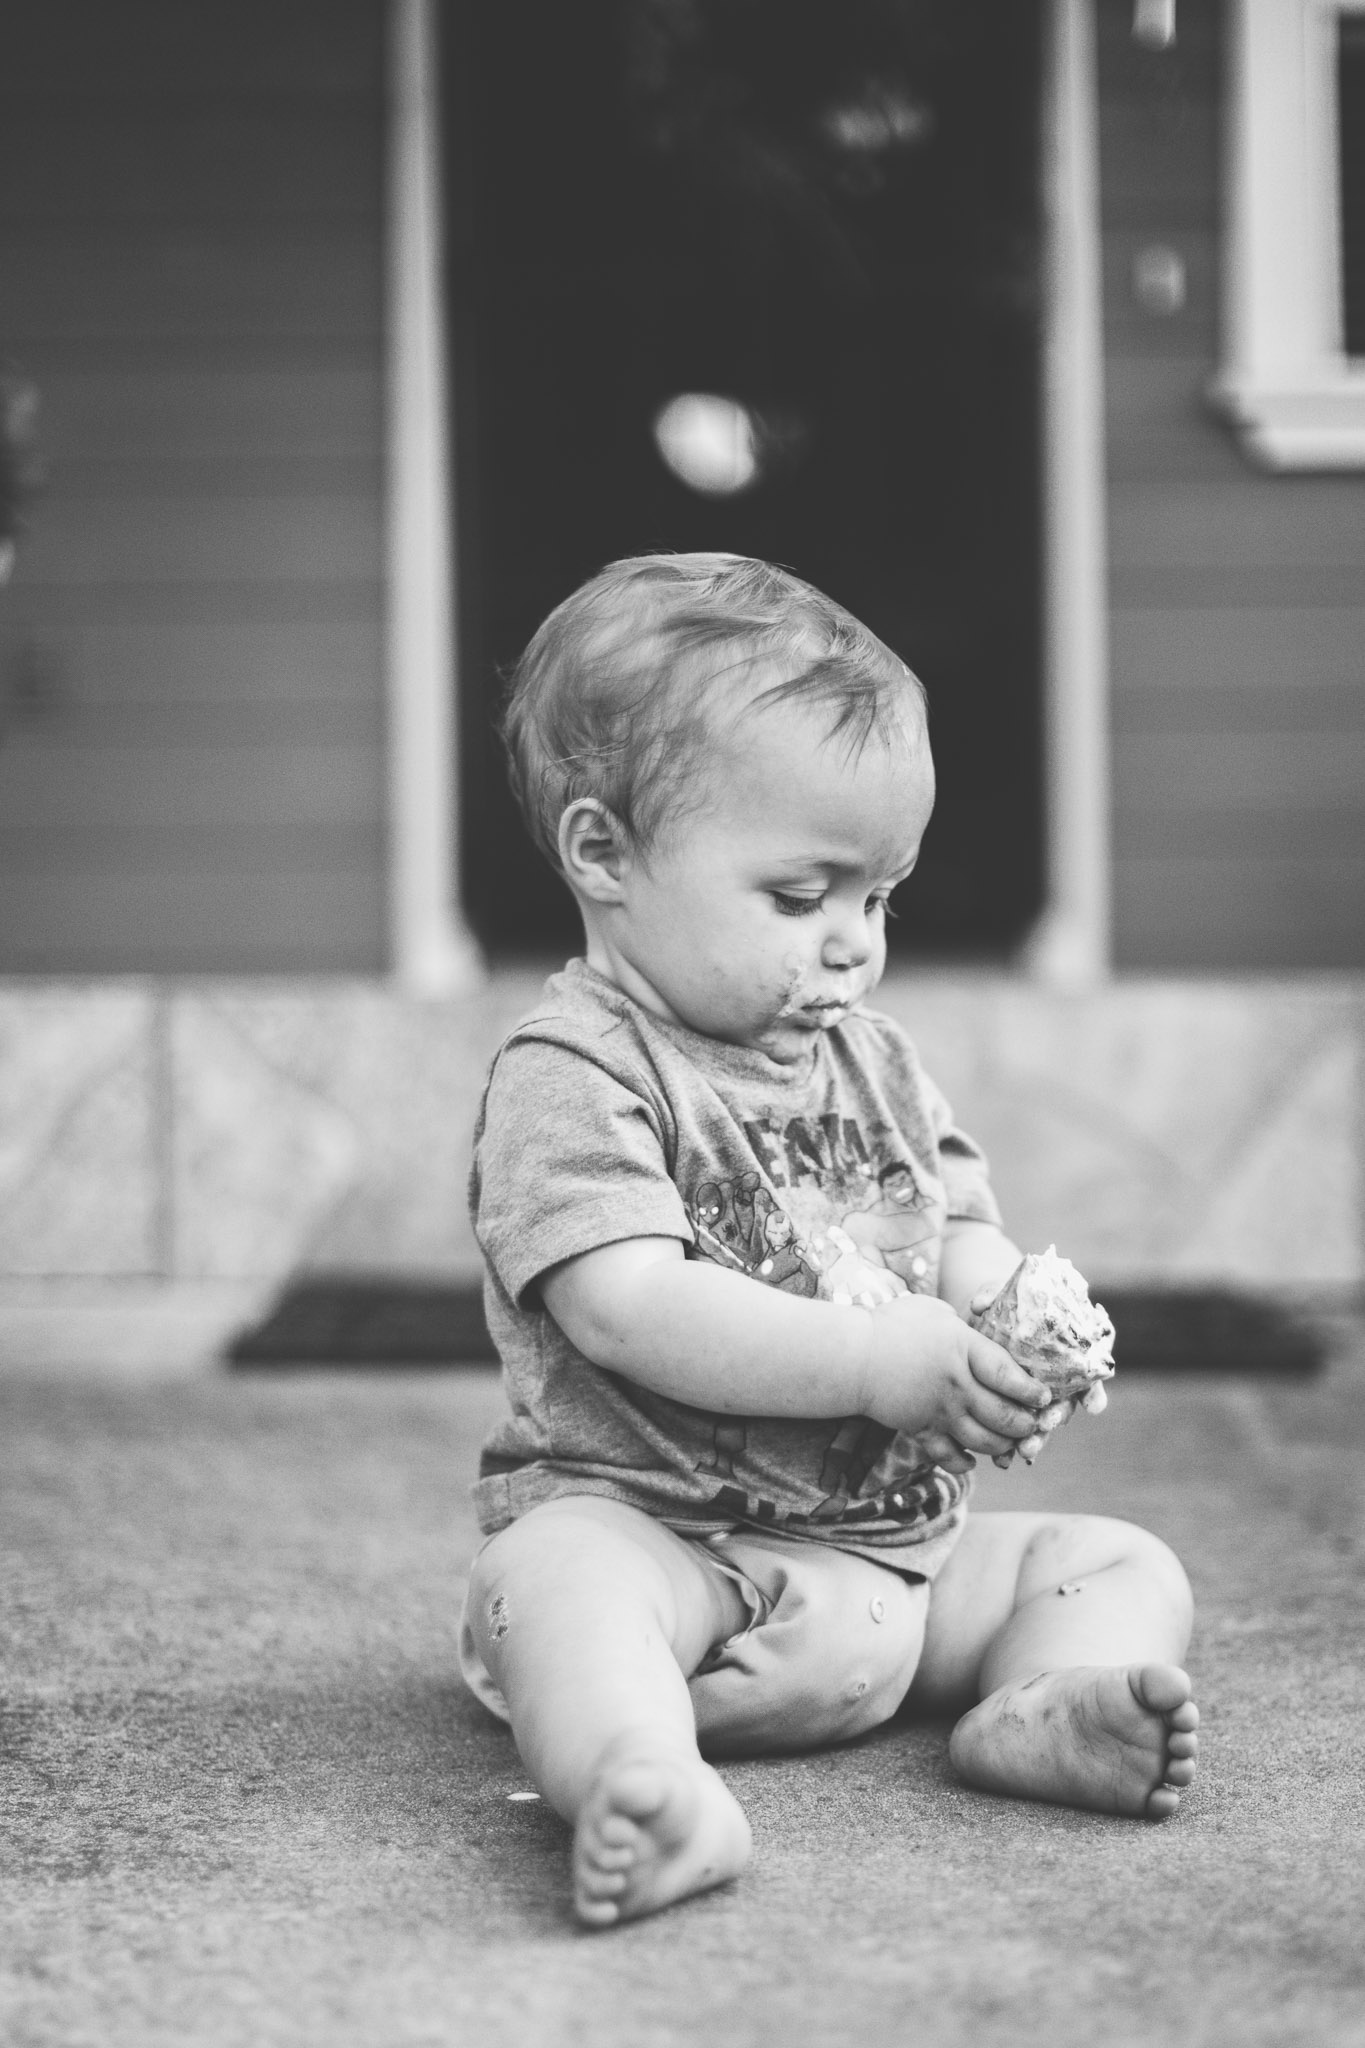 Archer_Inspired_Photography_Family_Photographer_Morgan_Hill_California-38.jpg